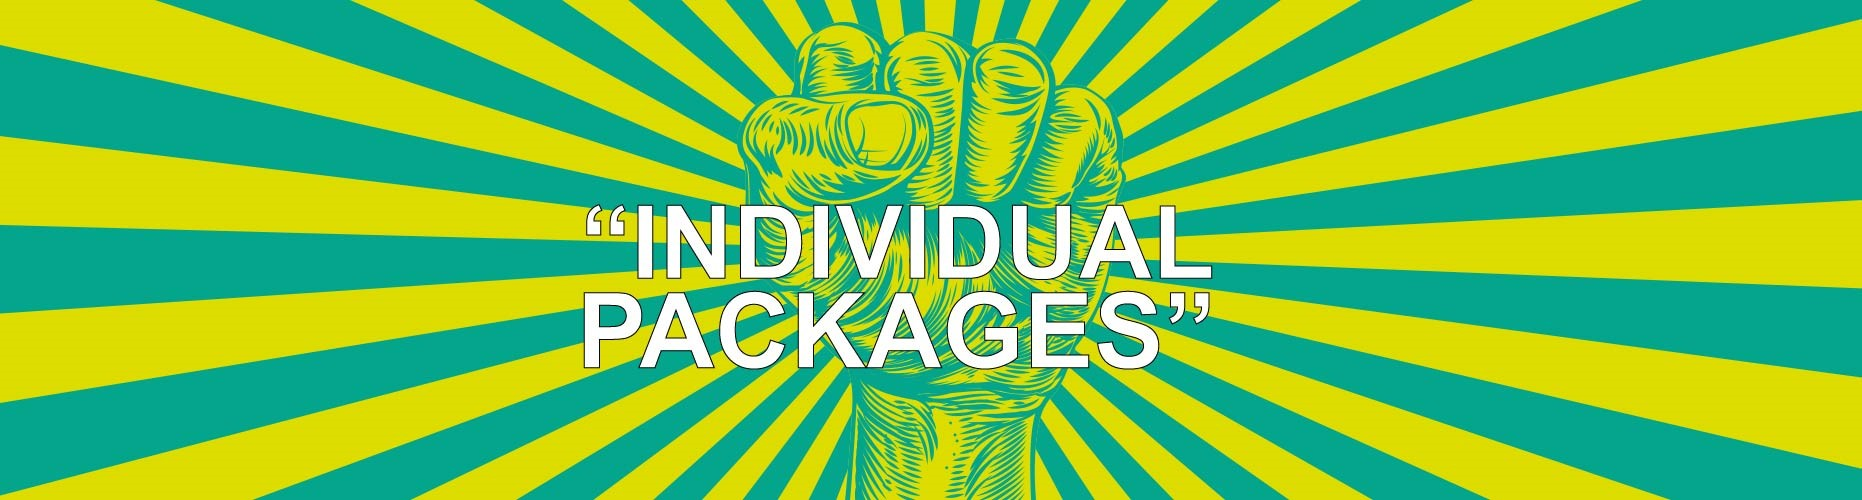 Website_individual packages